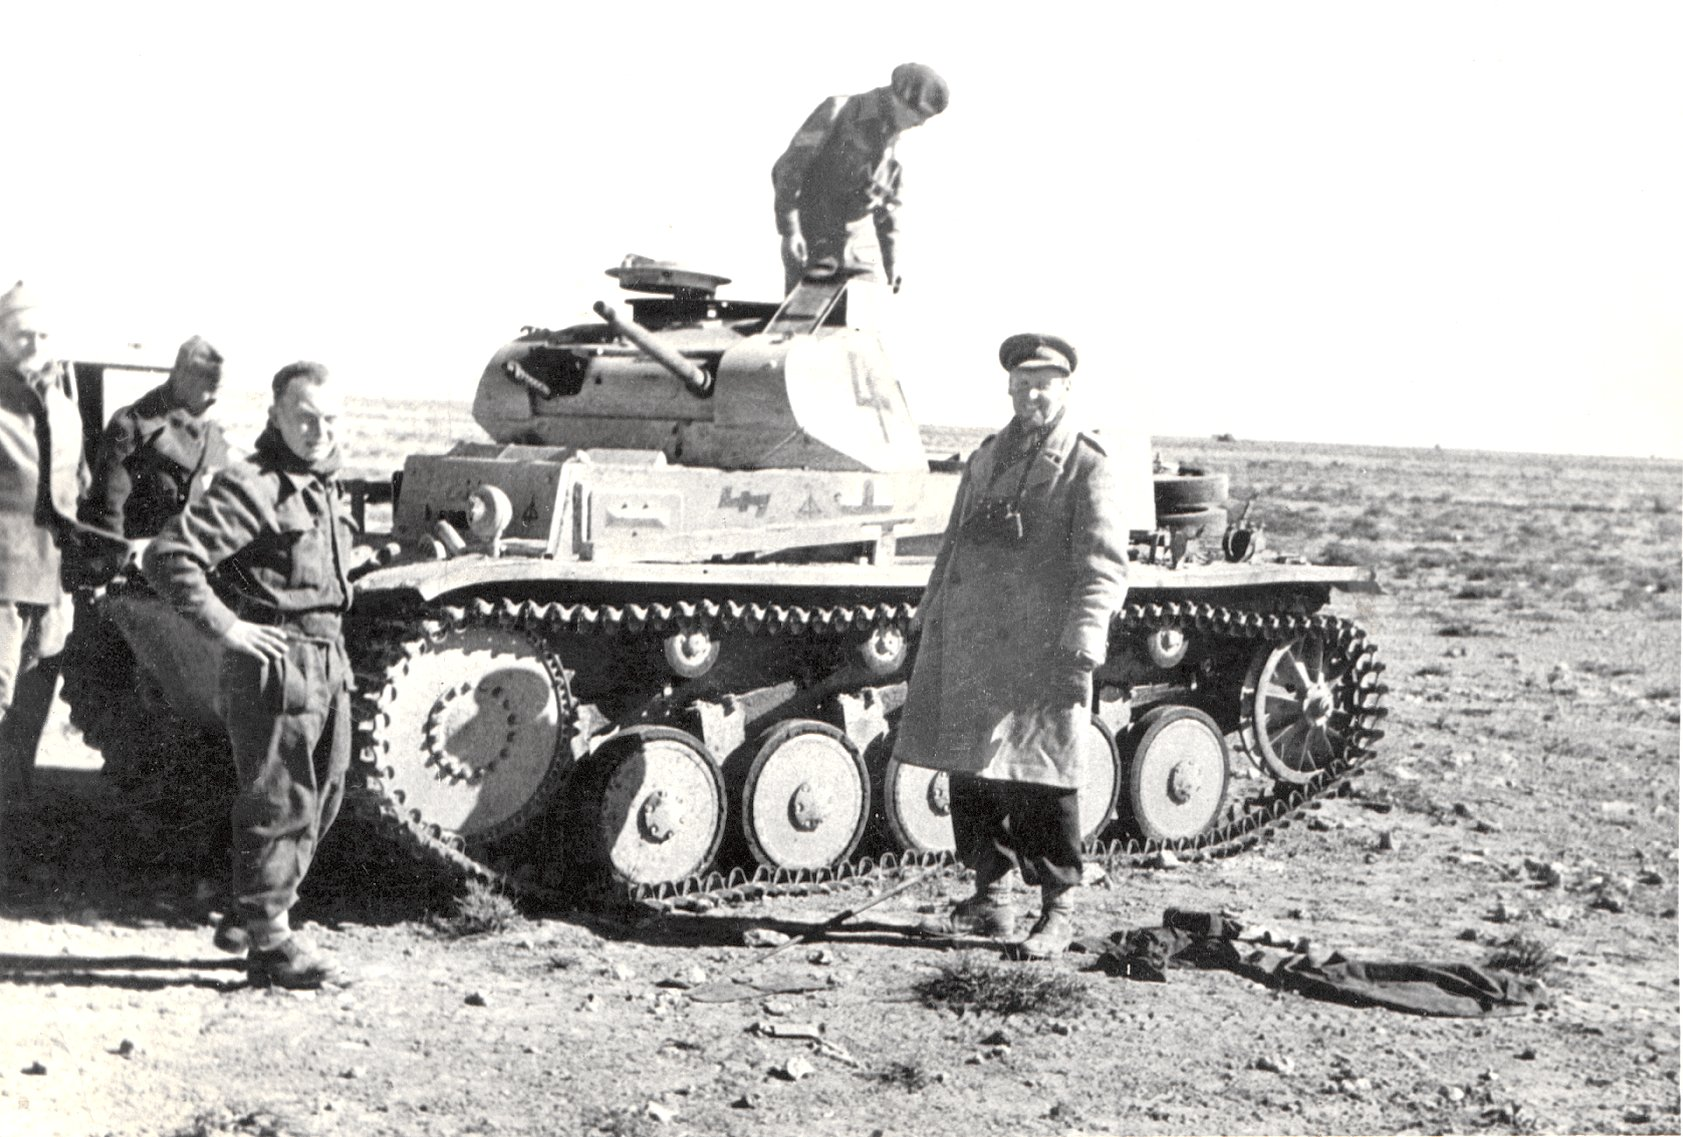 Sergeant W. Paul DuPre on top of Captured German Pz MKII Tank! On the ground:German prisoner (left), an unknown soldier, 'Slim' Hylift [later captured] and Captain Hooper [later captured]. NB The Hylift name may not be accurate as the first letter of the last name is partially obscured by old glue from photo album